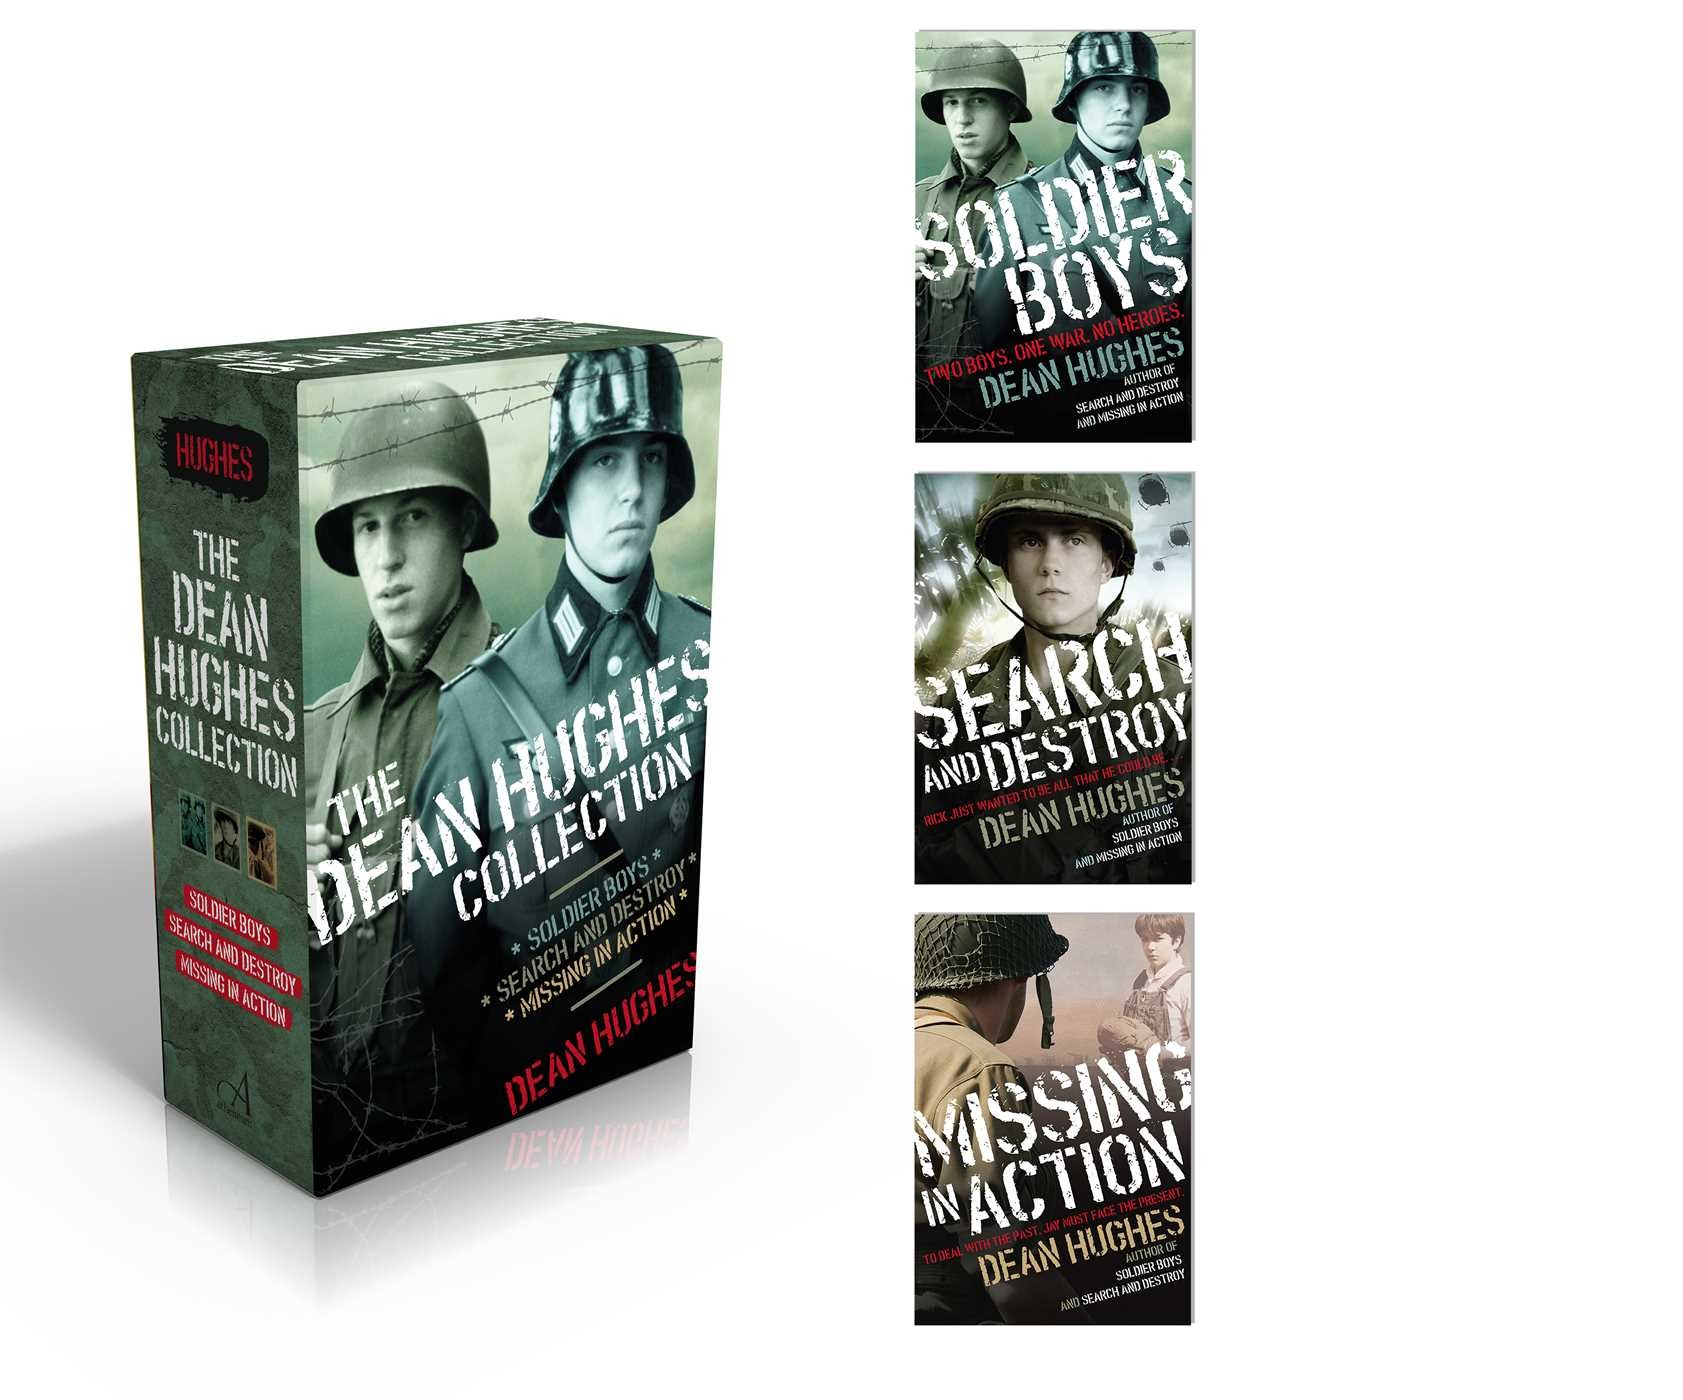 a response to soldier boys by dean hughes Check availability of soldier boys in library catalog soldier boys is about two soldier boys by dean hughes you can leave a response.